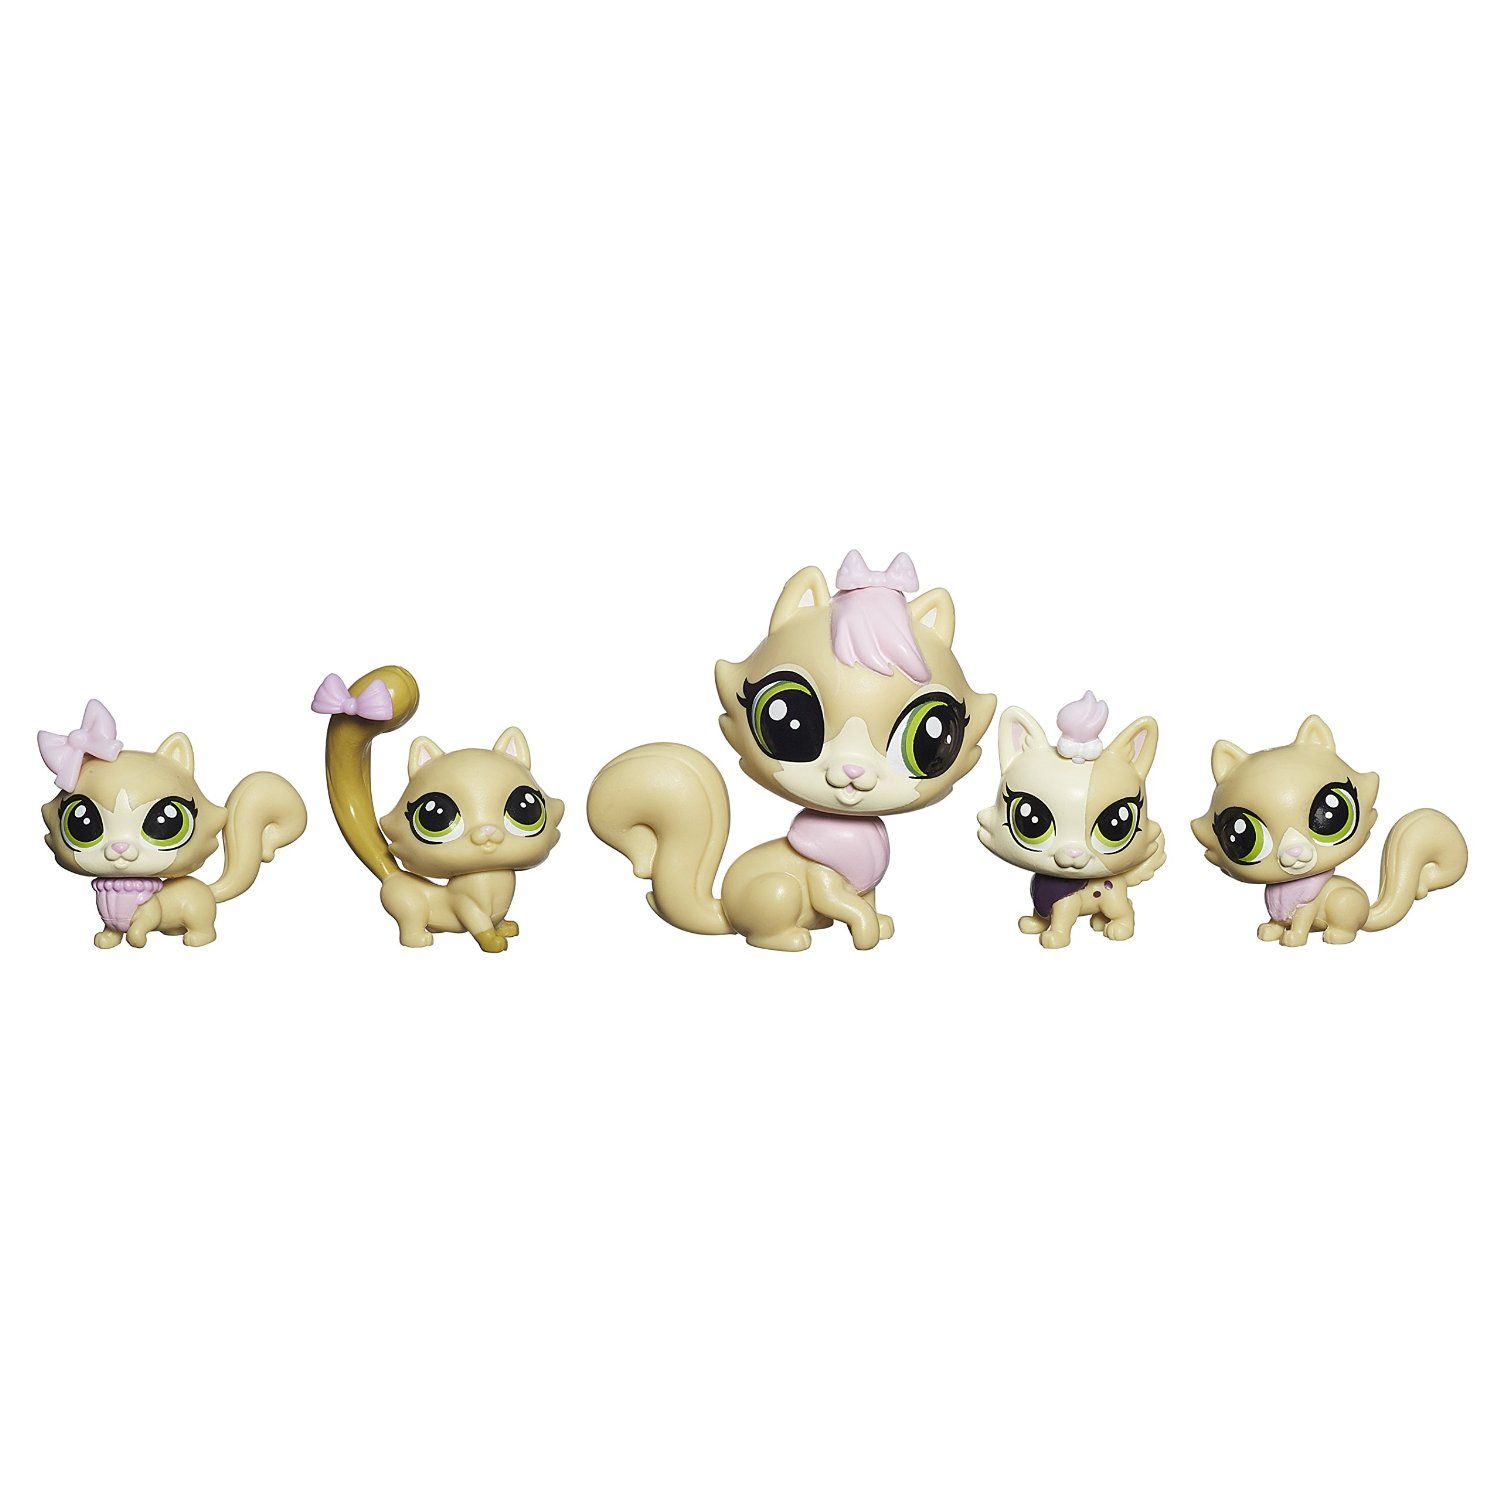 Amazon Com Littlest Pet Shop Surprise Families Mini Pet Pack Kitties Doll Toys Amp Games Lps Littlest Pet Shop Little Pets Littlest Pet Shop